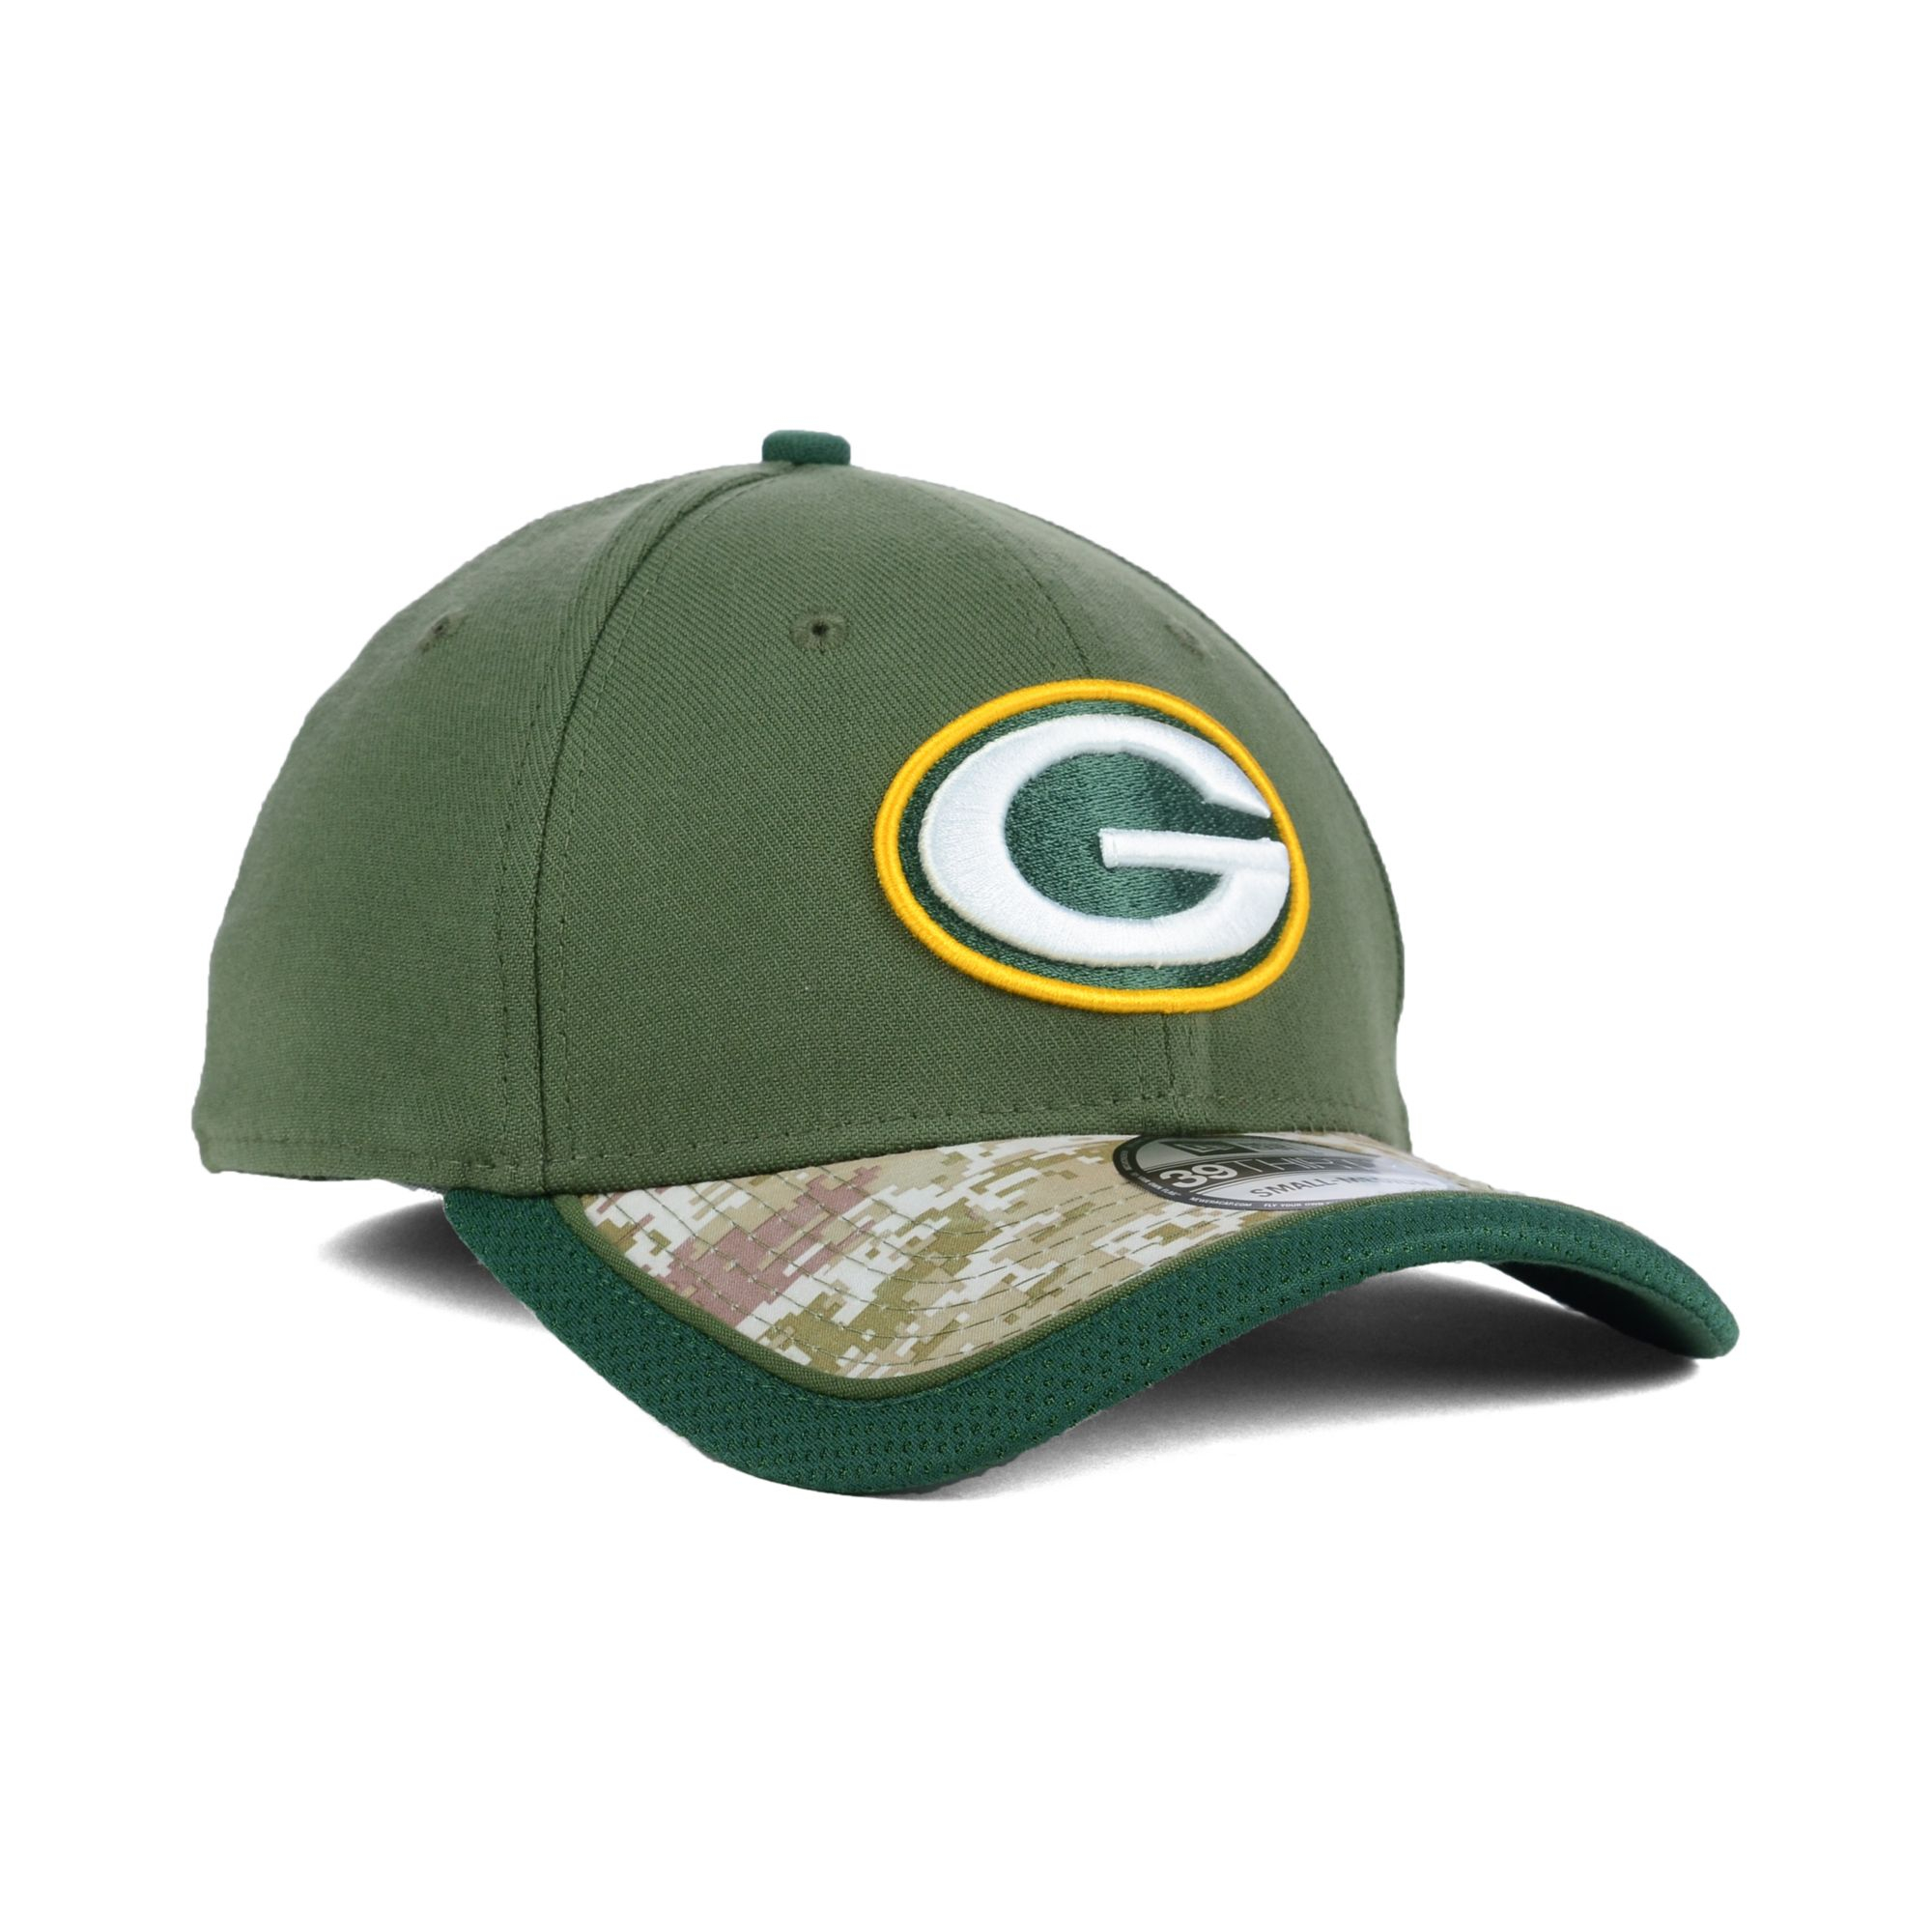 c124e2fbd Lyst - KTZ Green Bay Packers Salute To Service 39thirty Cap in Green ...